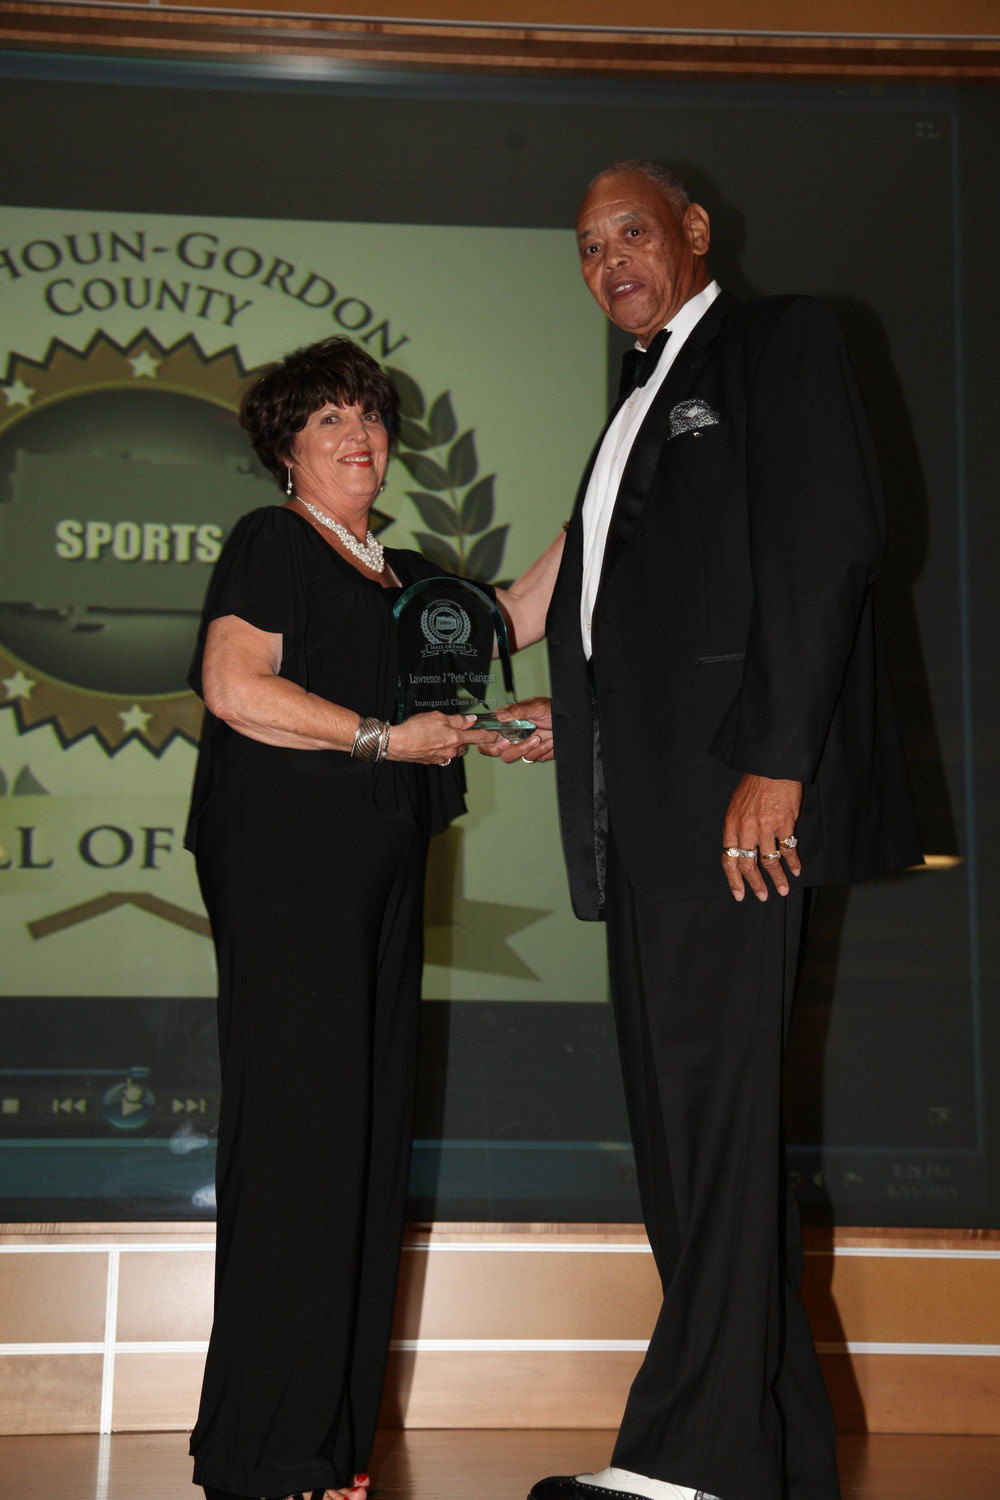 Calhoun-Gordon-County-Sports-Hall-of-Fame-2015-086.jpg